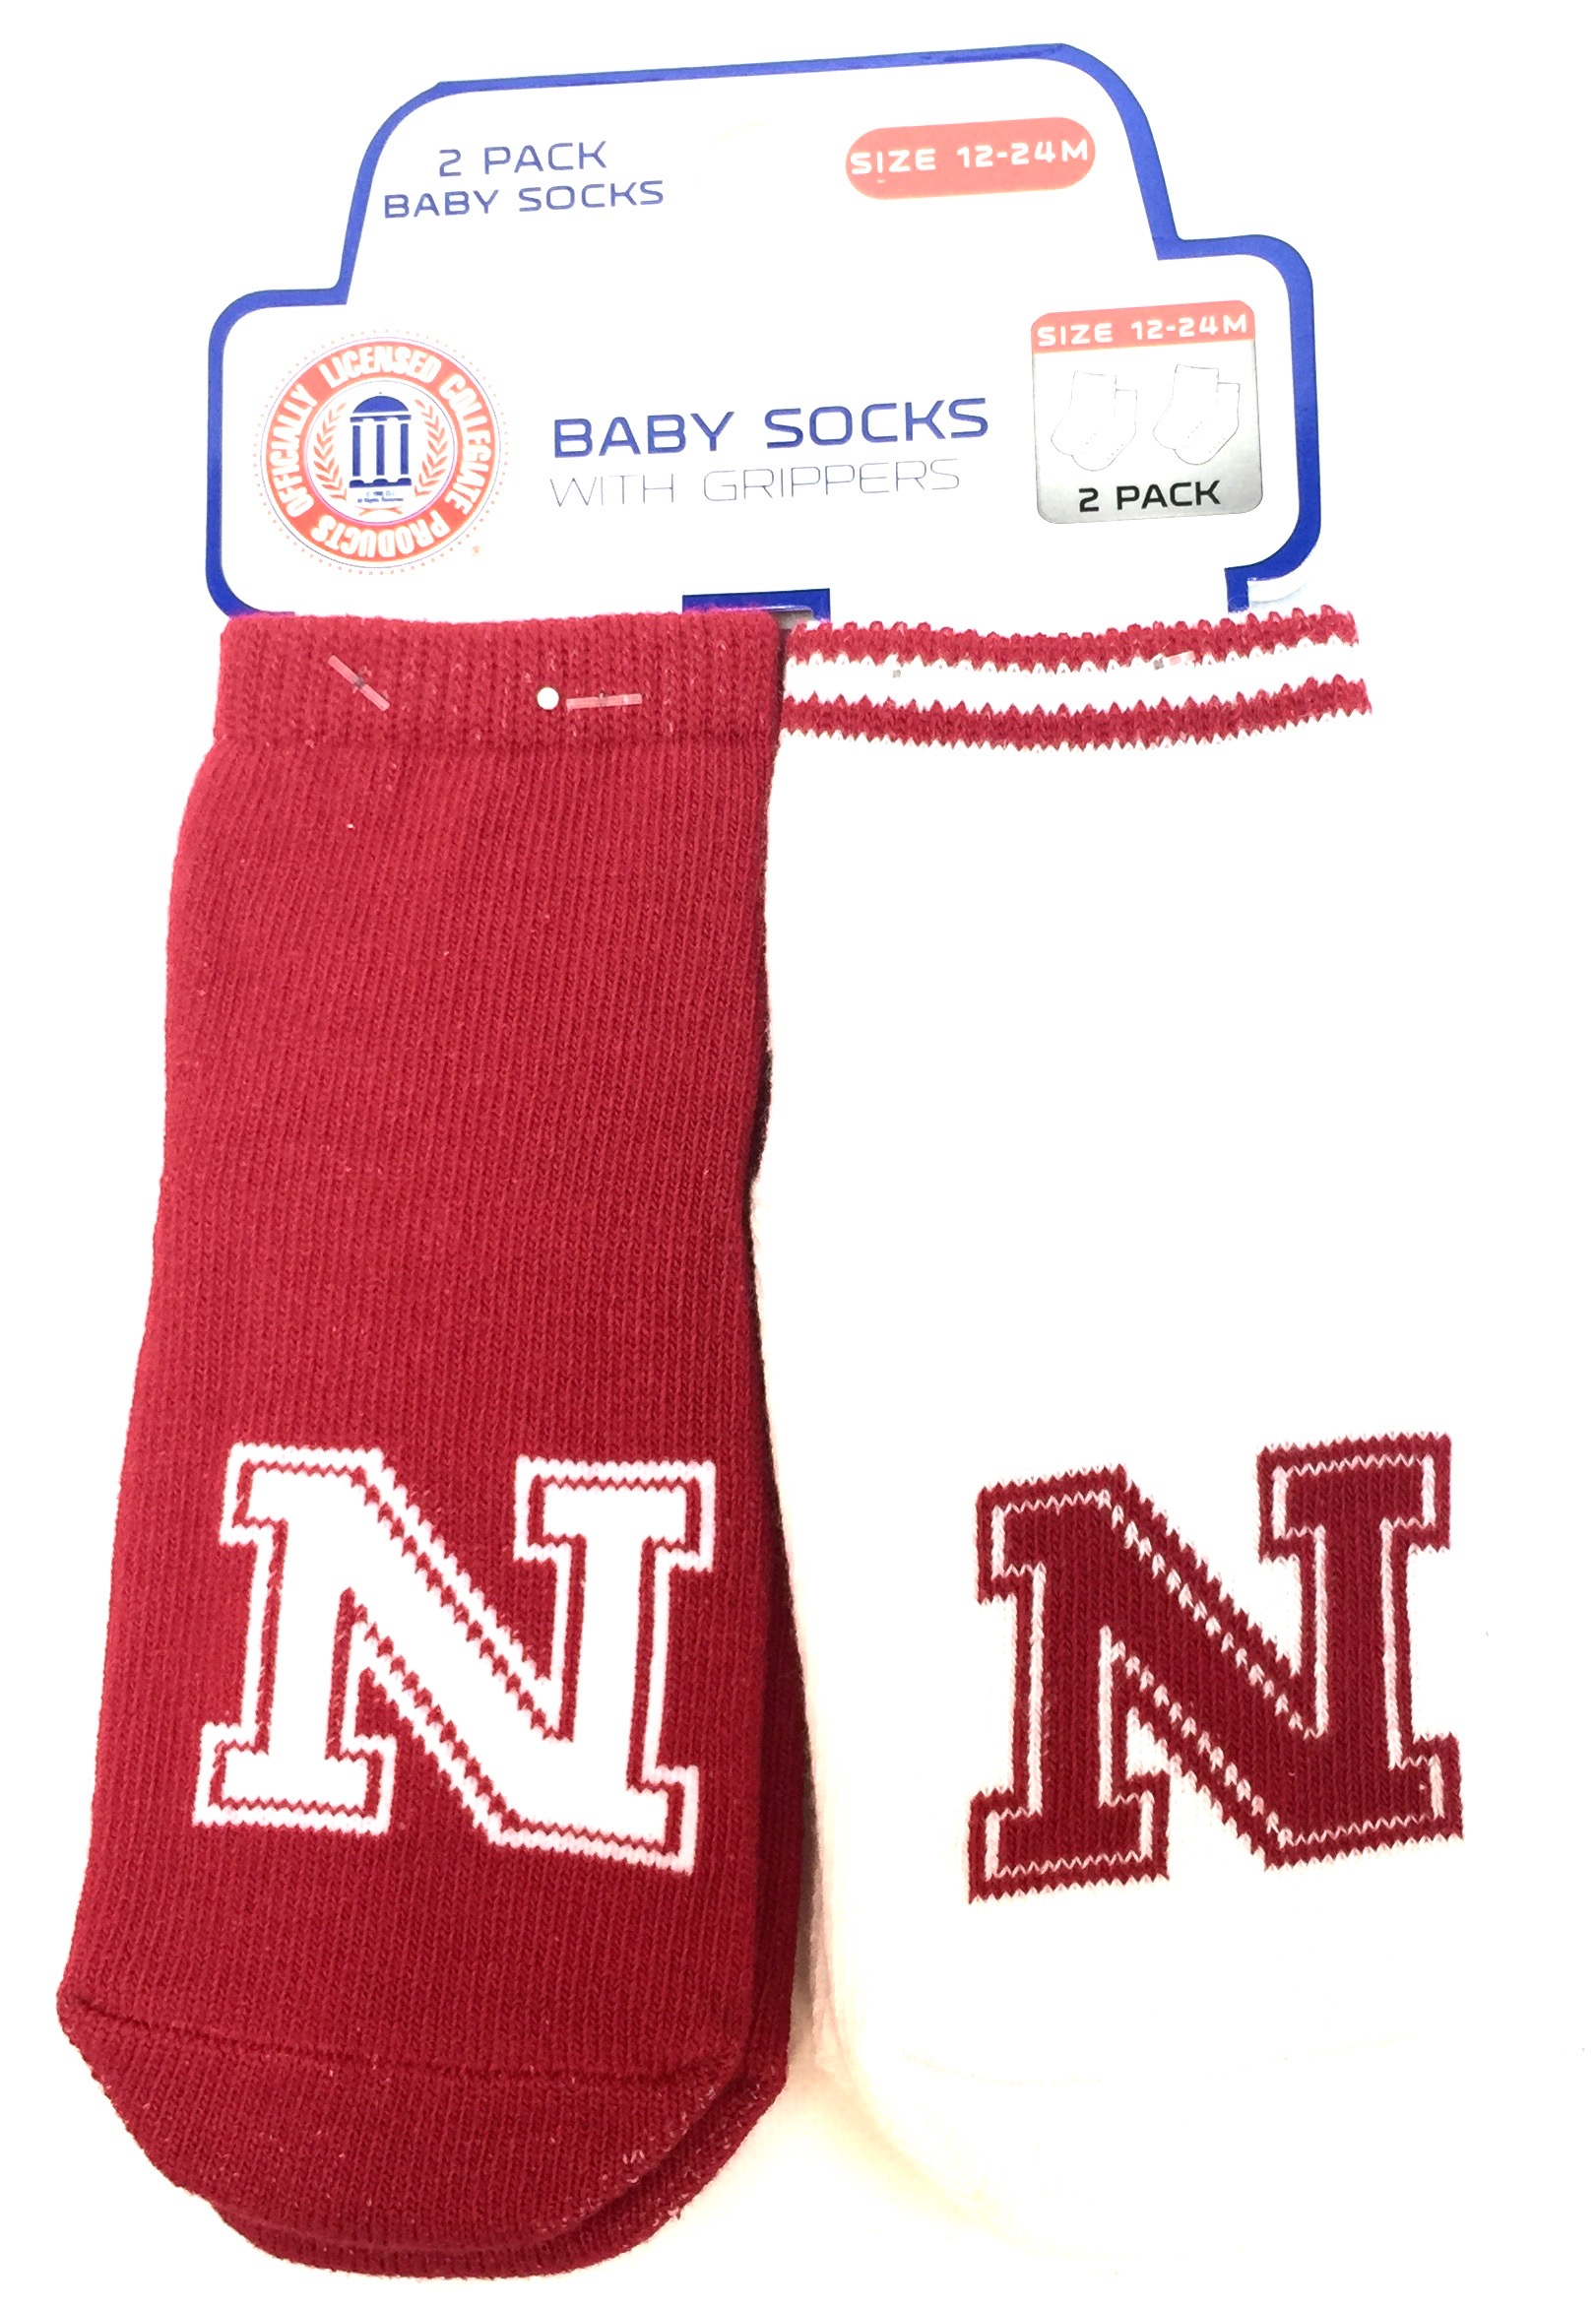 Carded 2 Pk Baby Socks w/Grippers - Nebraska